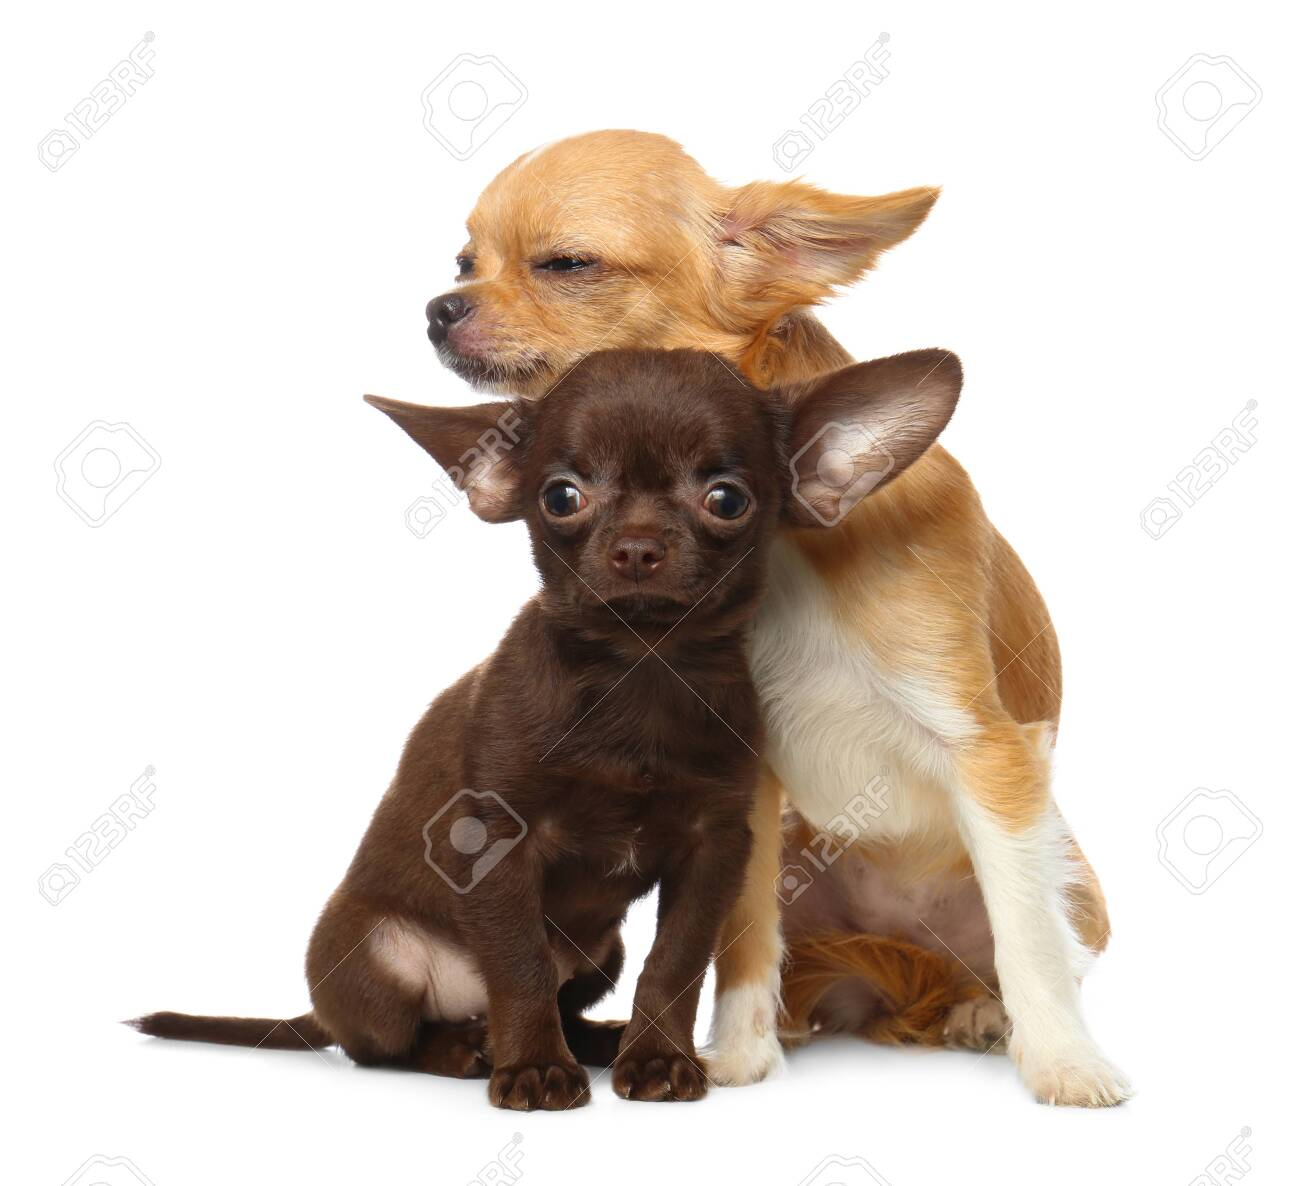 Cute Small Chihuahua Dogs On White Background Stock Photo Picture And Royalty Free Image Image 129750069